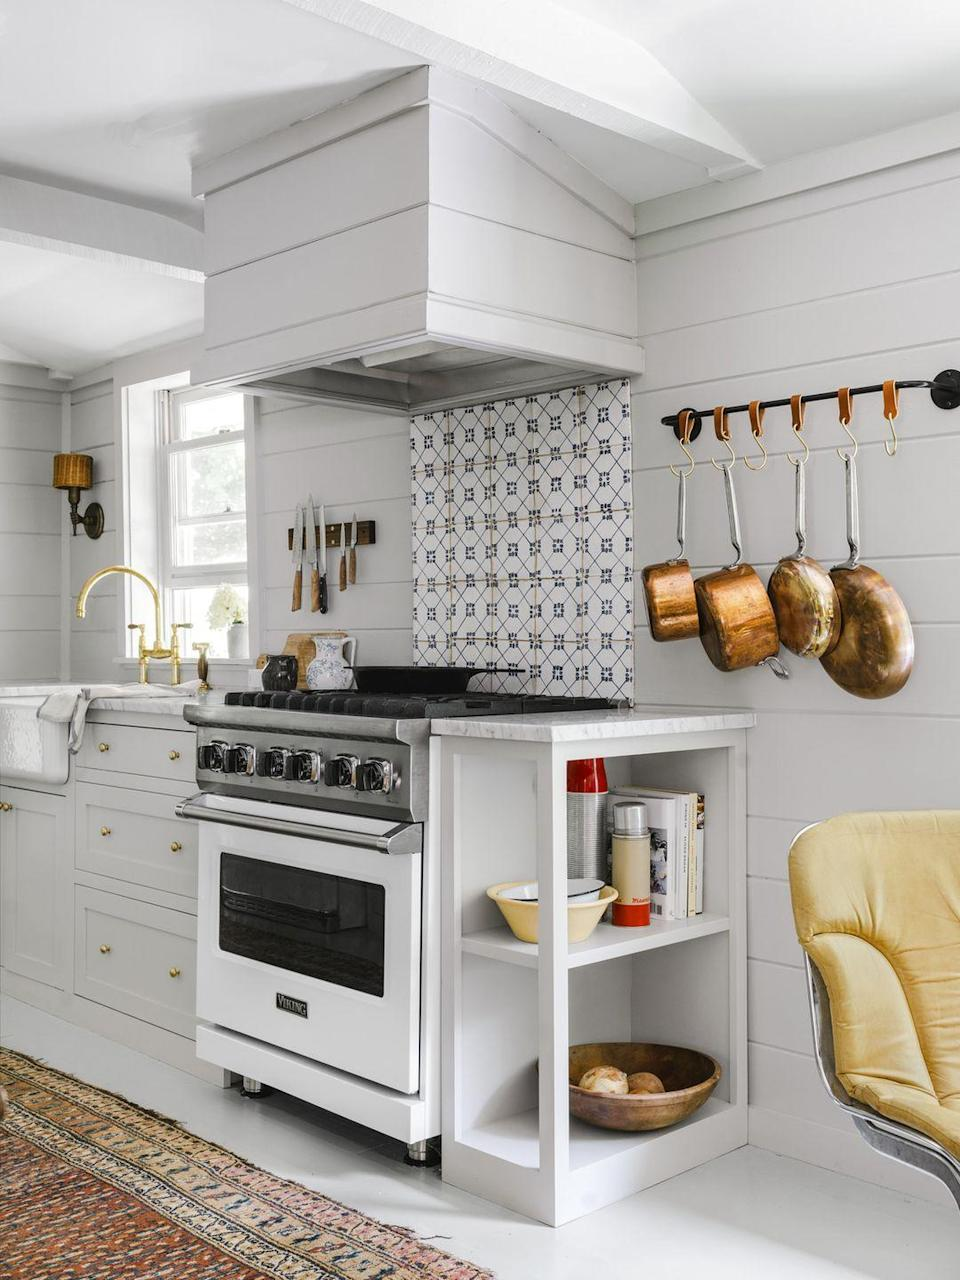 <p>Light cabinets, countertops, and appliances make this tiny 8-by-12-foot galley kitchen look bigger than it is. A hand-painted Portuguese tile backsplash serves up a fresh focal point.</p>